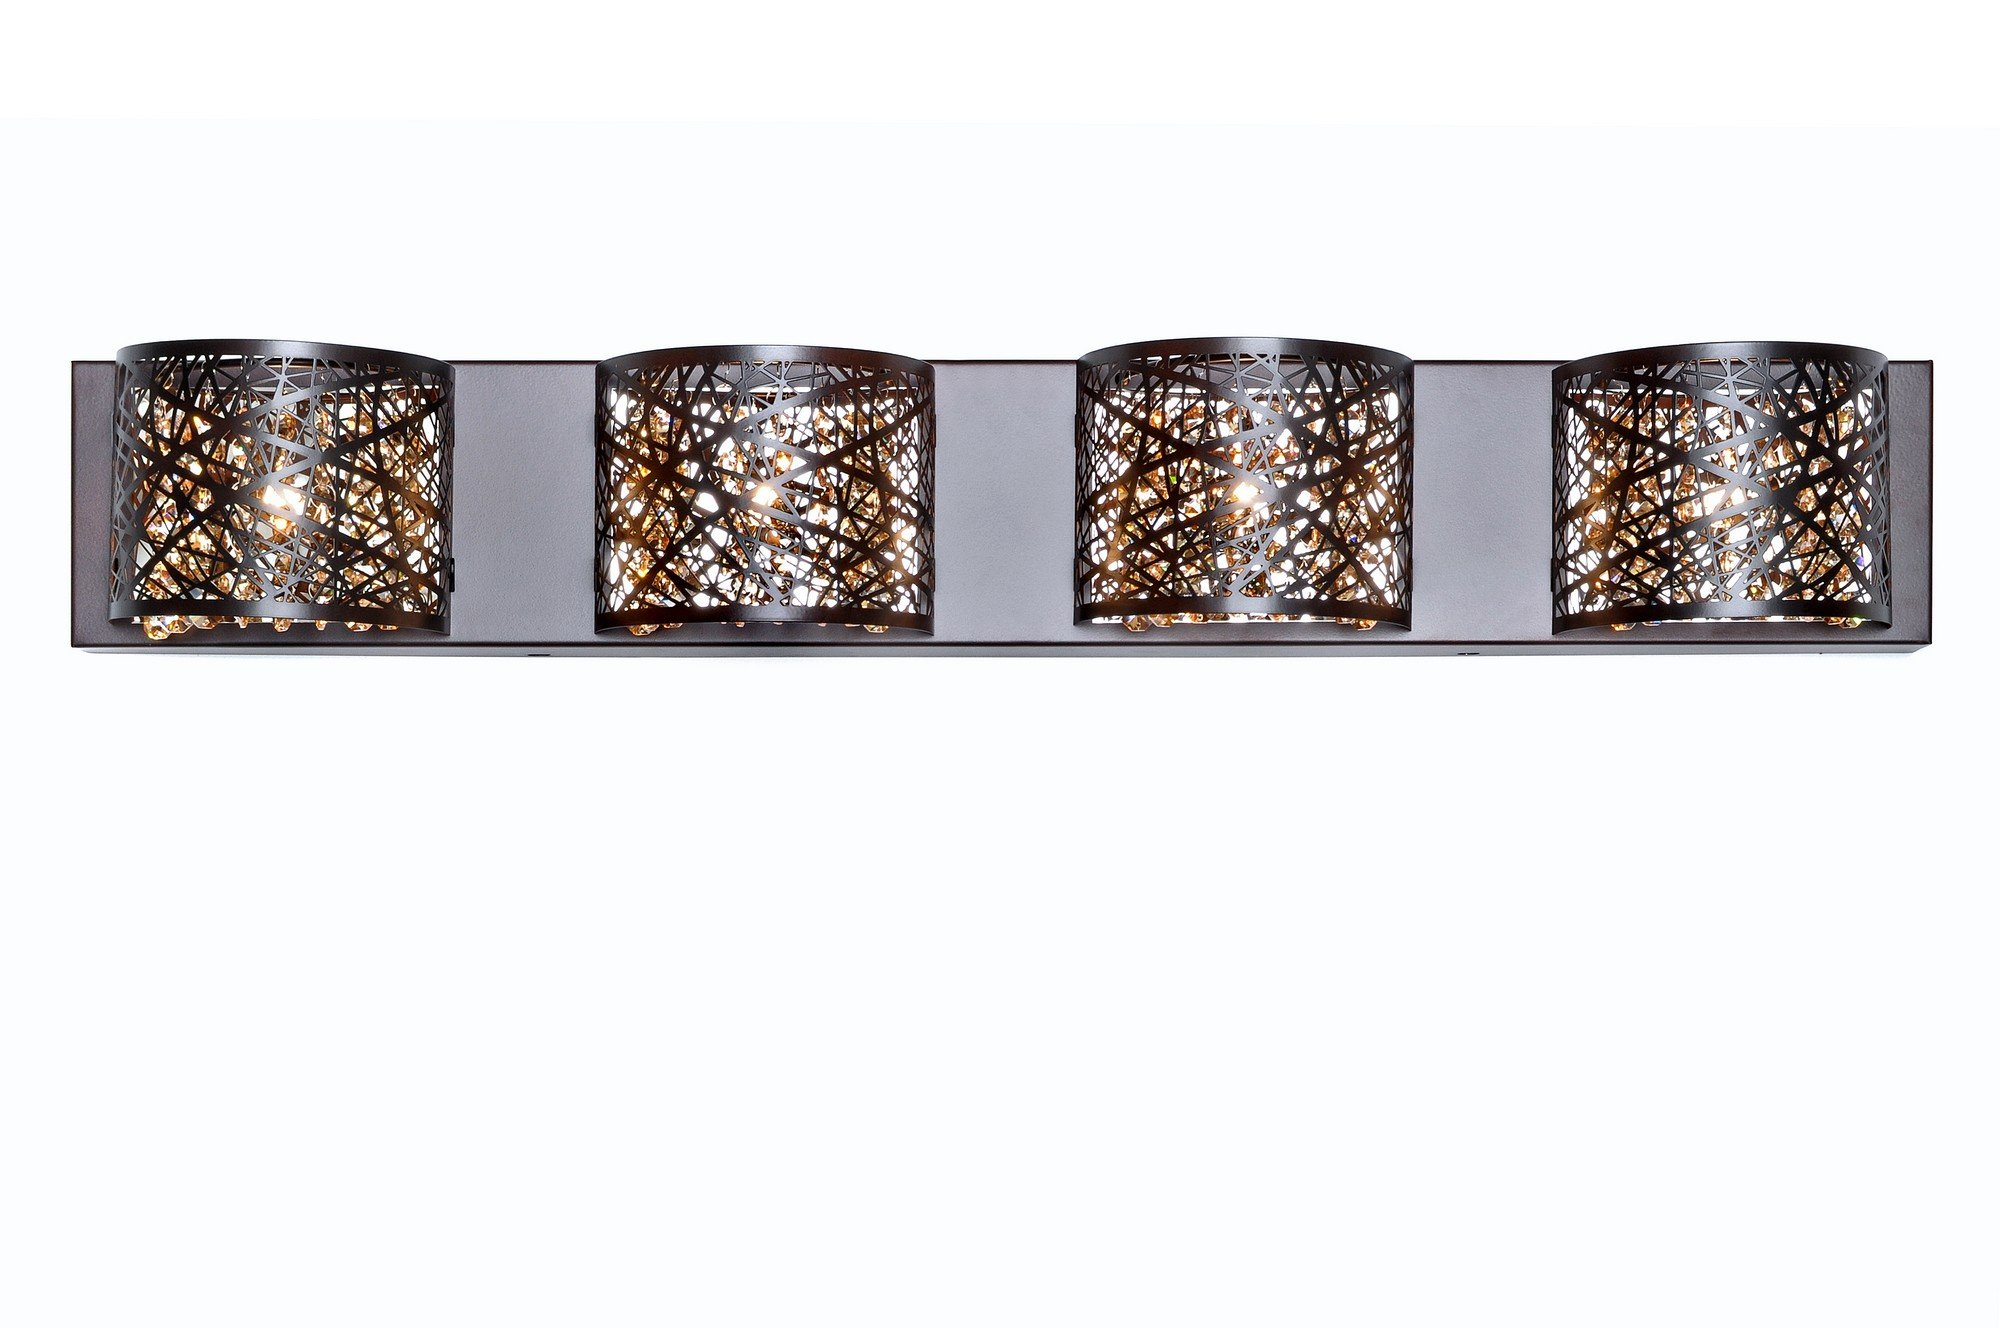 ET2 E21317-10BZ Inca 4-Light Wall Mount Bath Vanity, Bronze Finish, Cognac Glass, G9 Xenon Bulb, 20W Max., Dry Safety Rated, 2900K Color Temp., Standard Dimmable, Glass Shade Material, 156 Rated Lumens